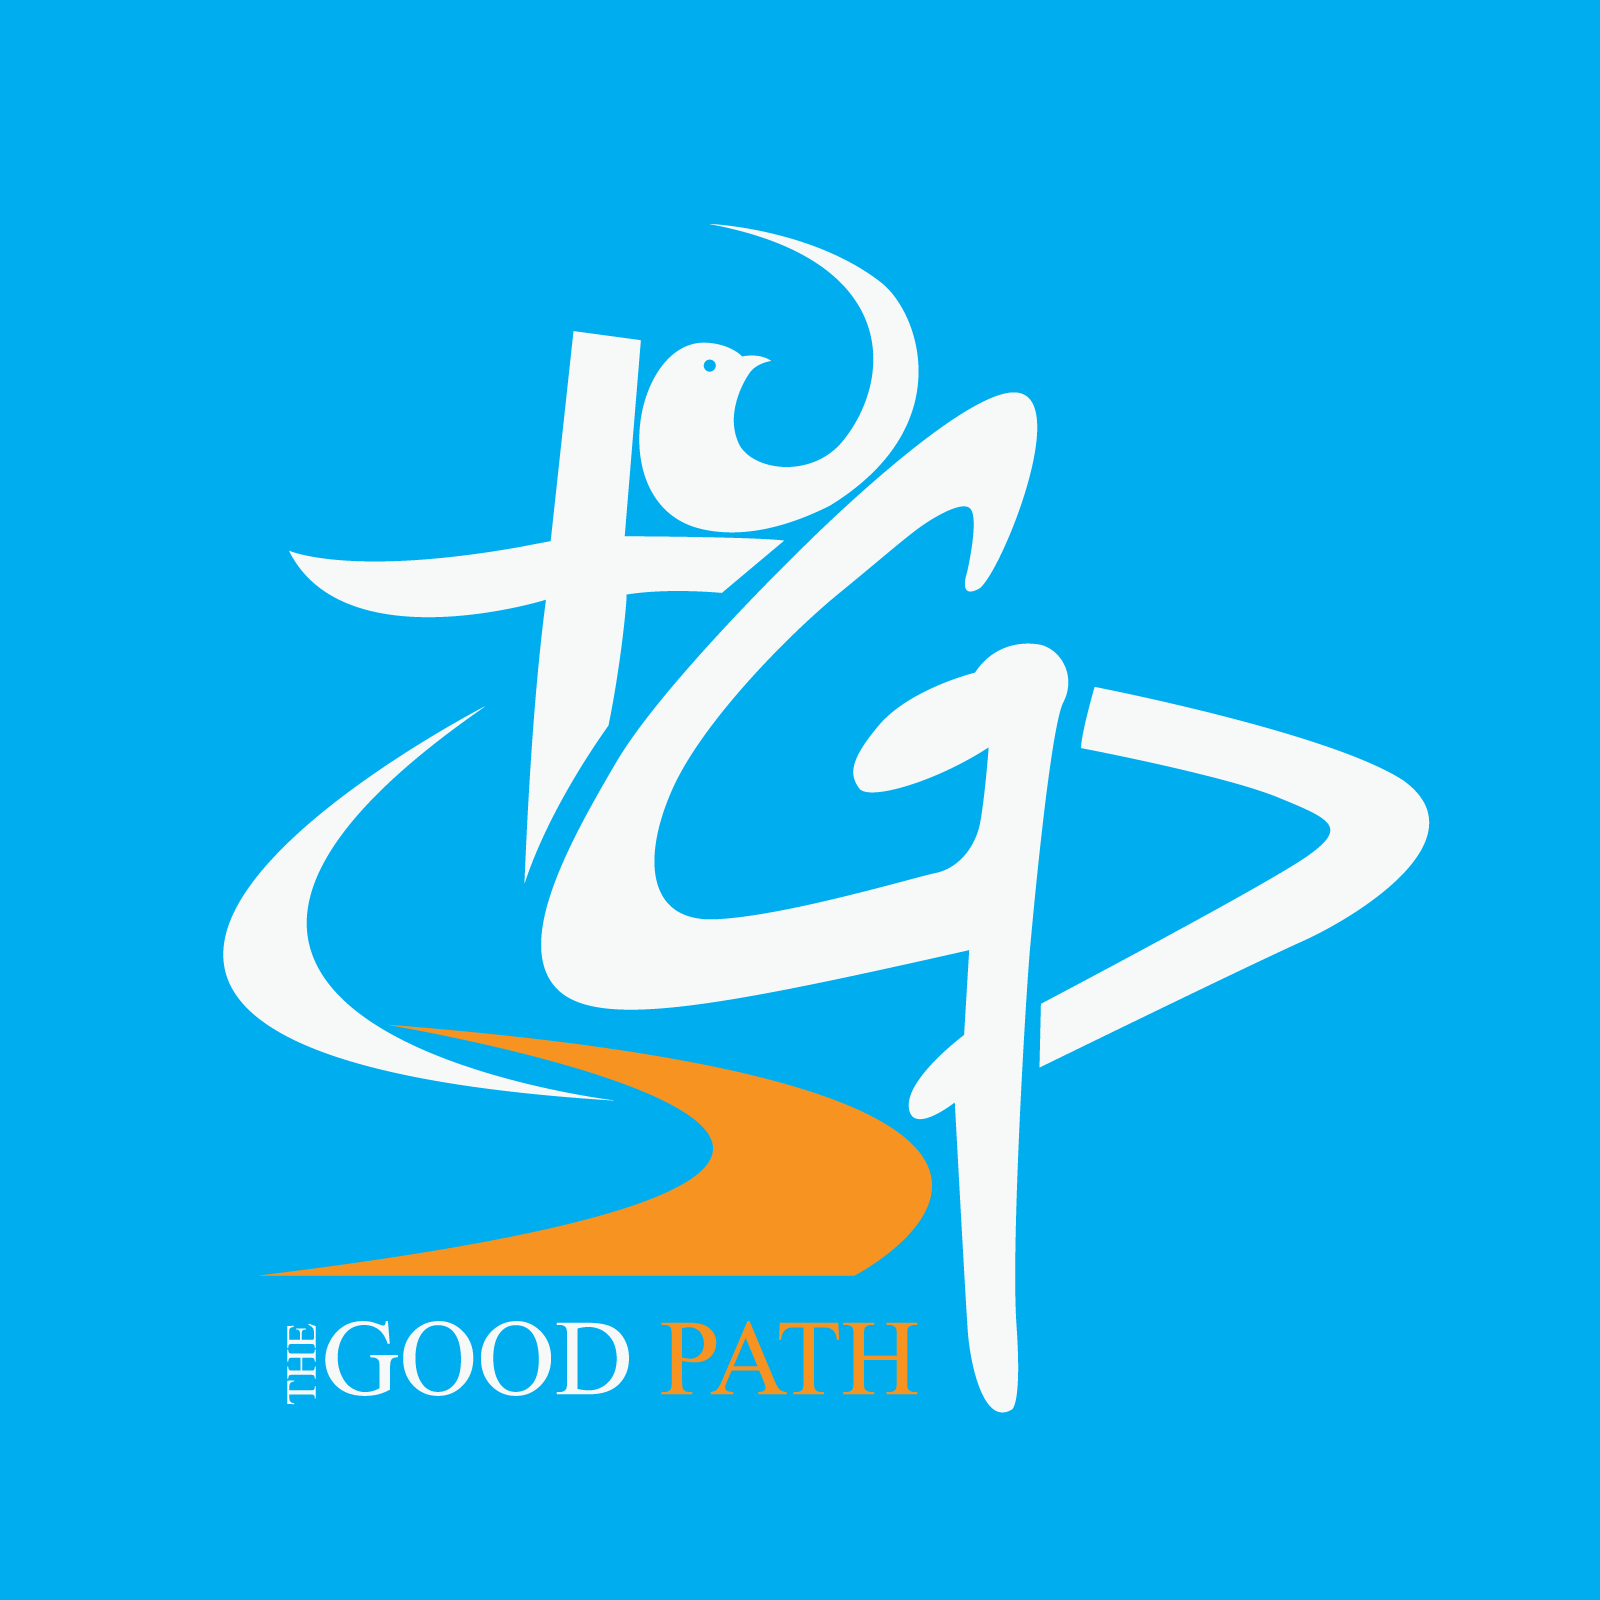 The Good Path | Discussions about waiting and walking with God | Watch God fulfill your deep desire for closeness with Christ.